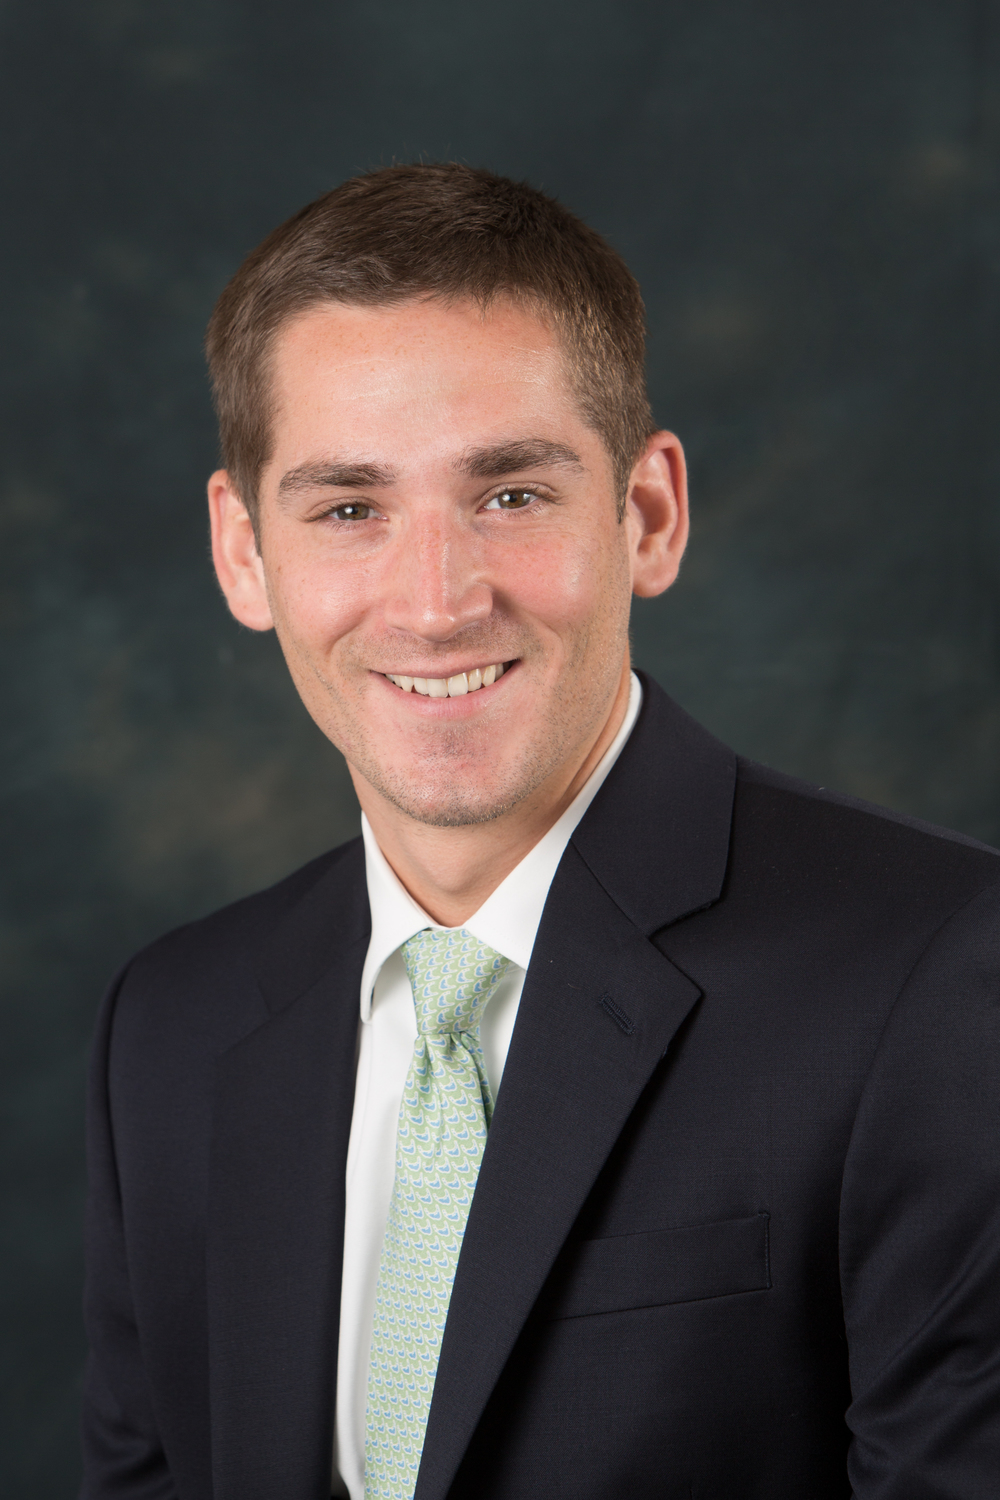 corporate head shot mortgage company .jpg